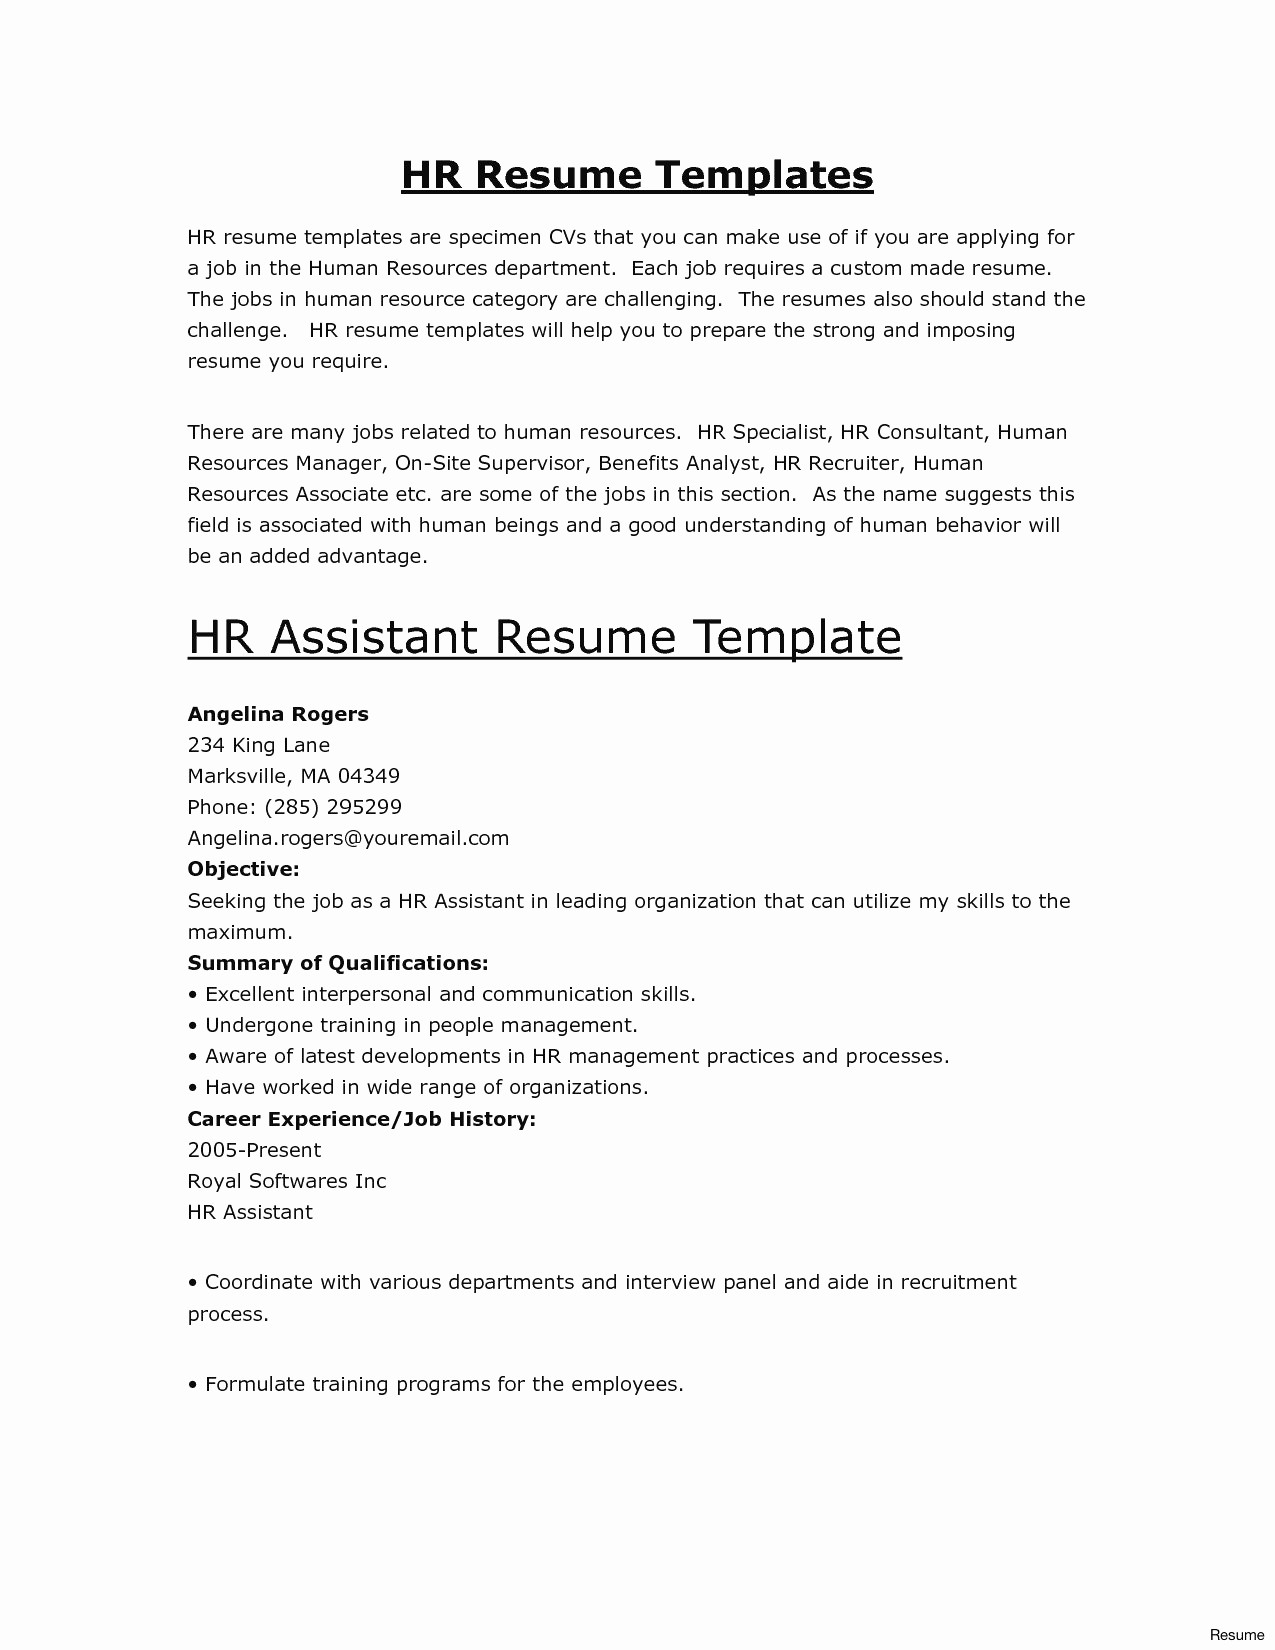 Resume Template Libreoffice - Employment Verification Letter Template Word Examples